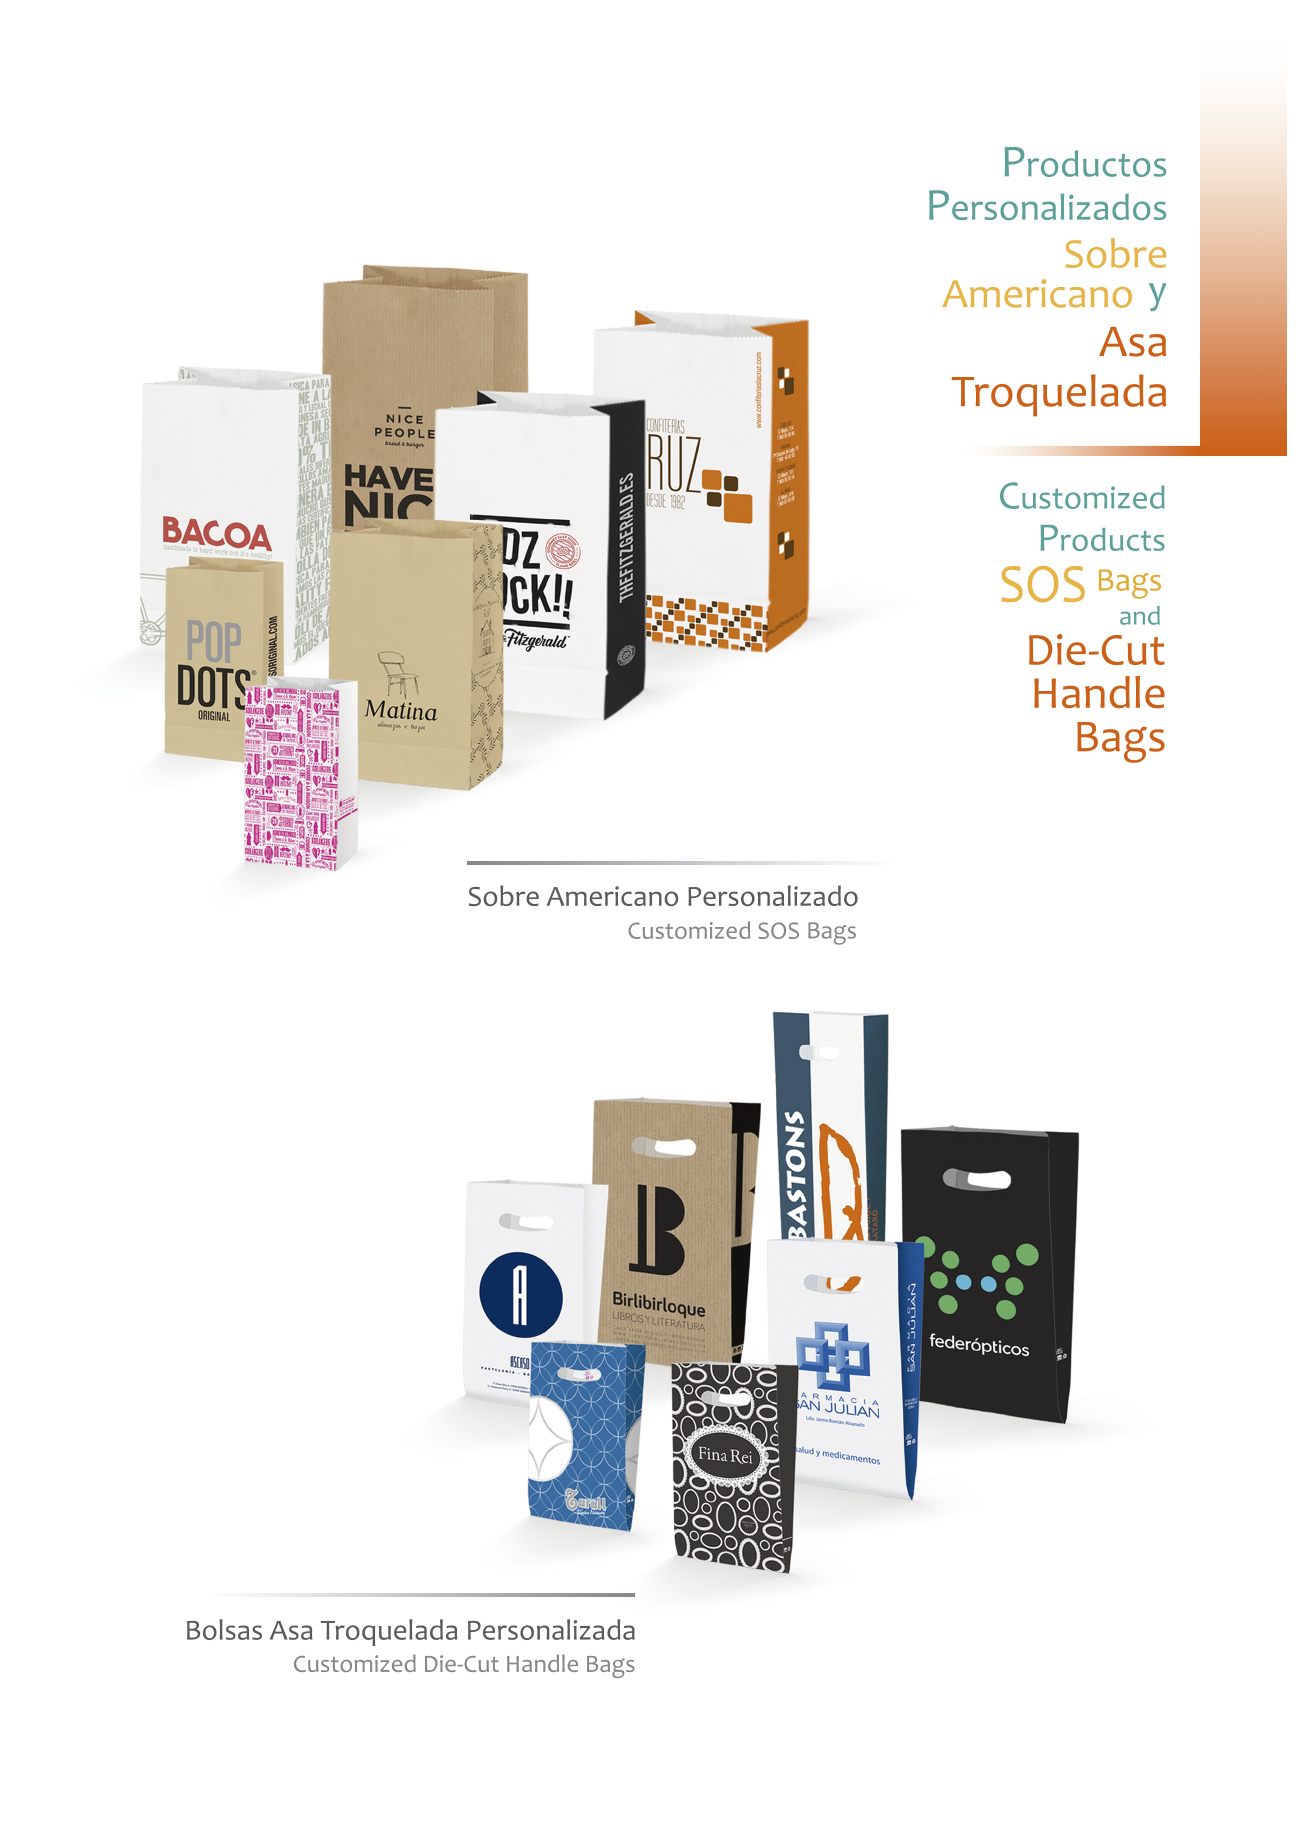 Bolsas en Papel, packaging en papel.